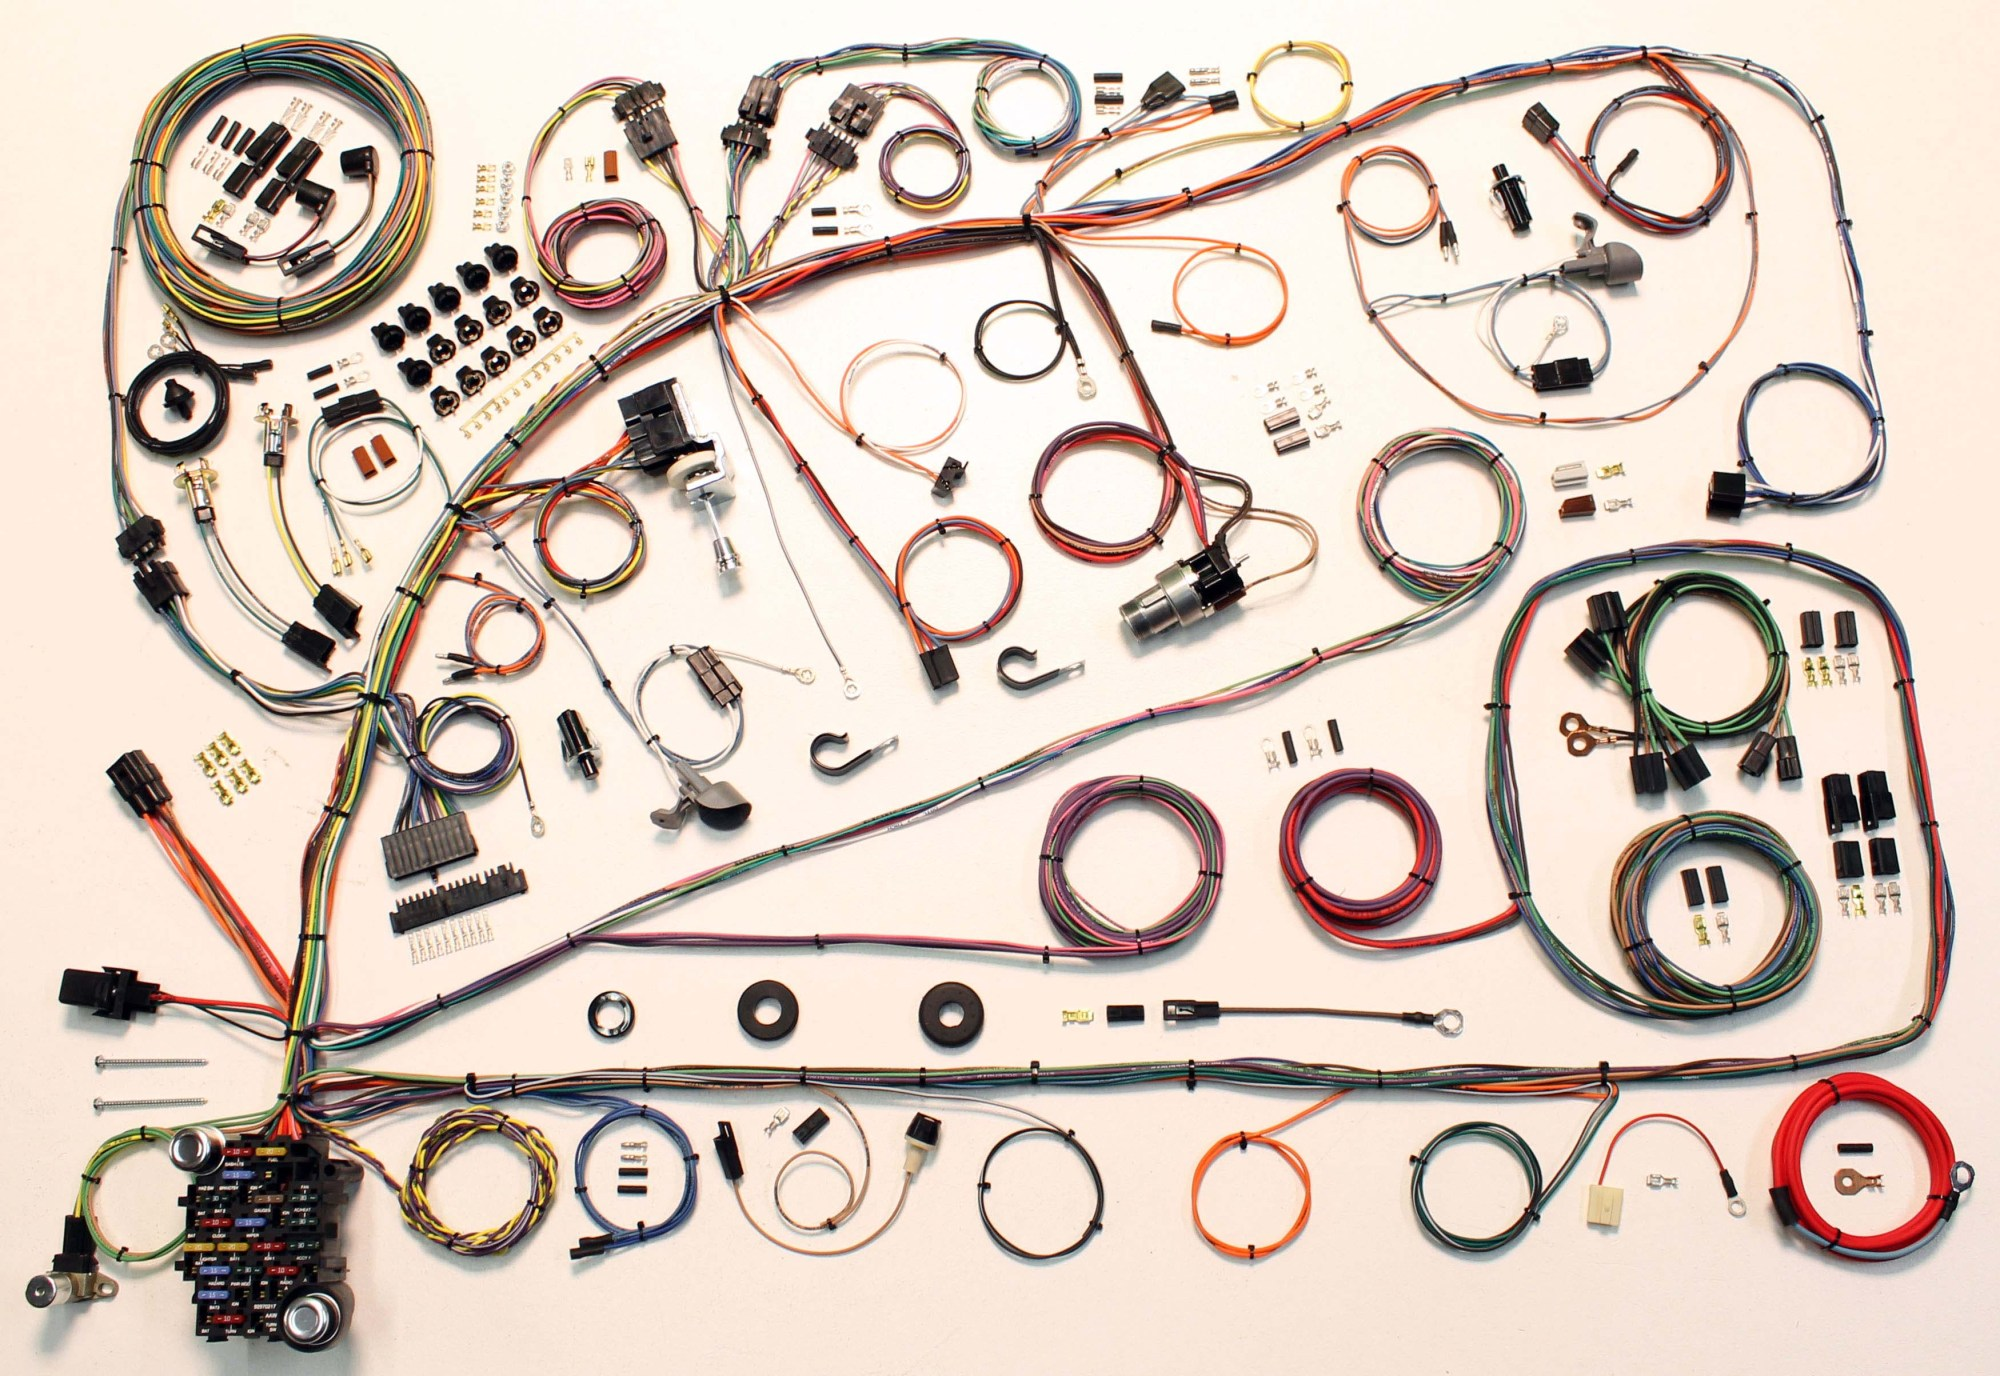 hight resolution of an american autowire 1966 1967 ford fairlane classic update kit was used to replace the